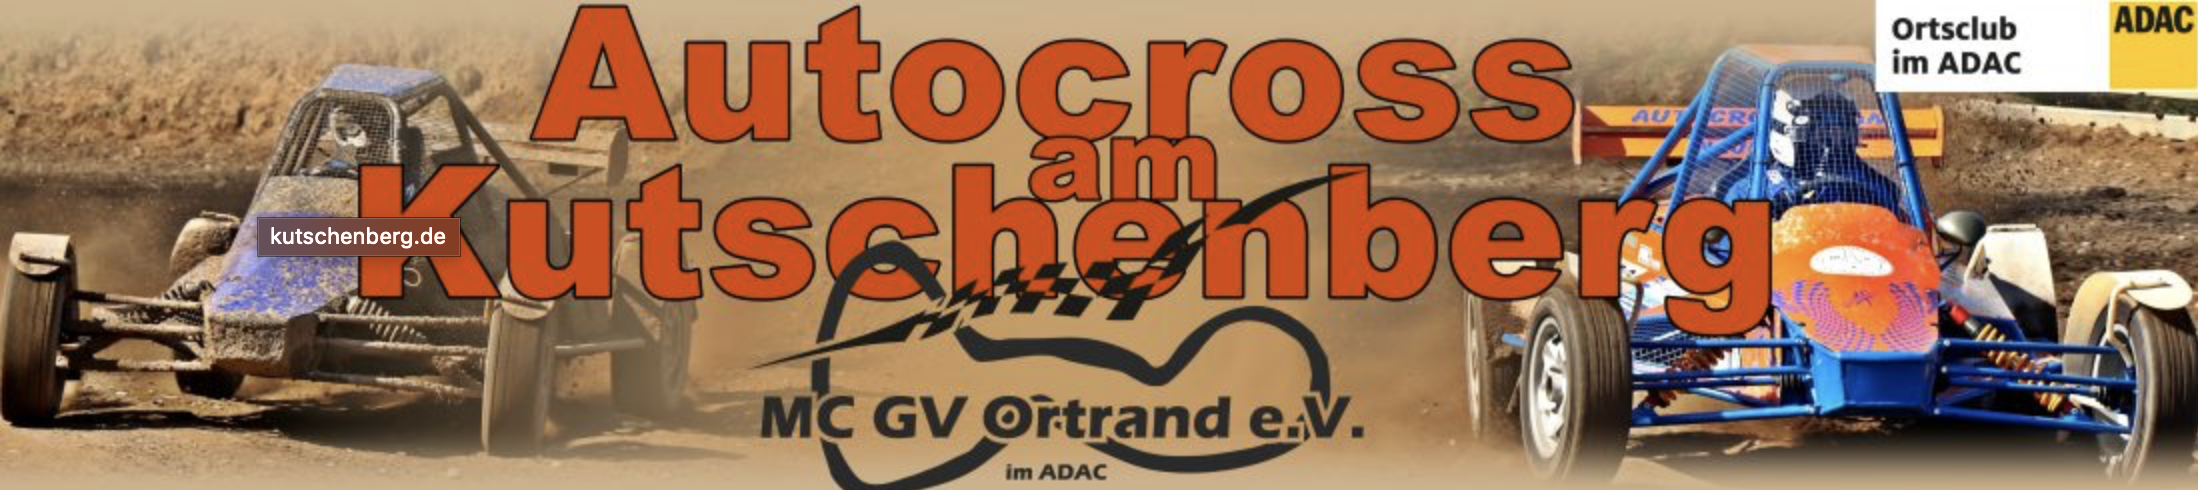 MC GV Ortrand e. V.